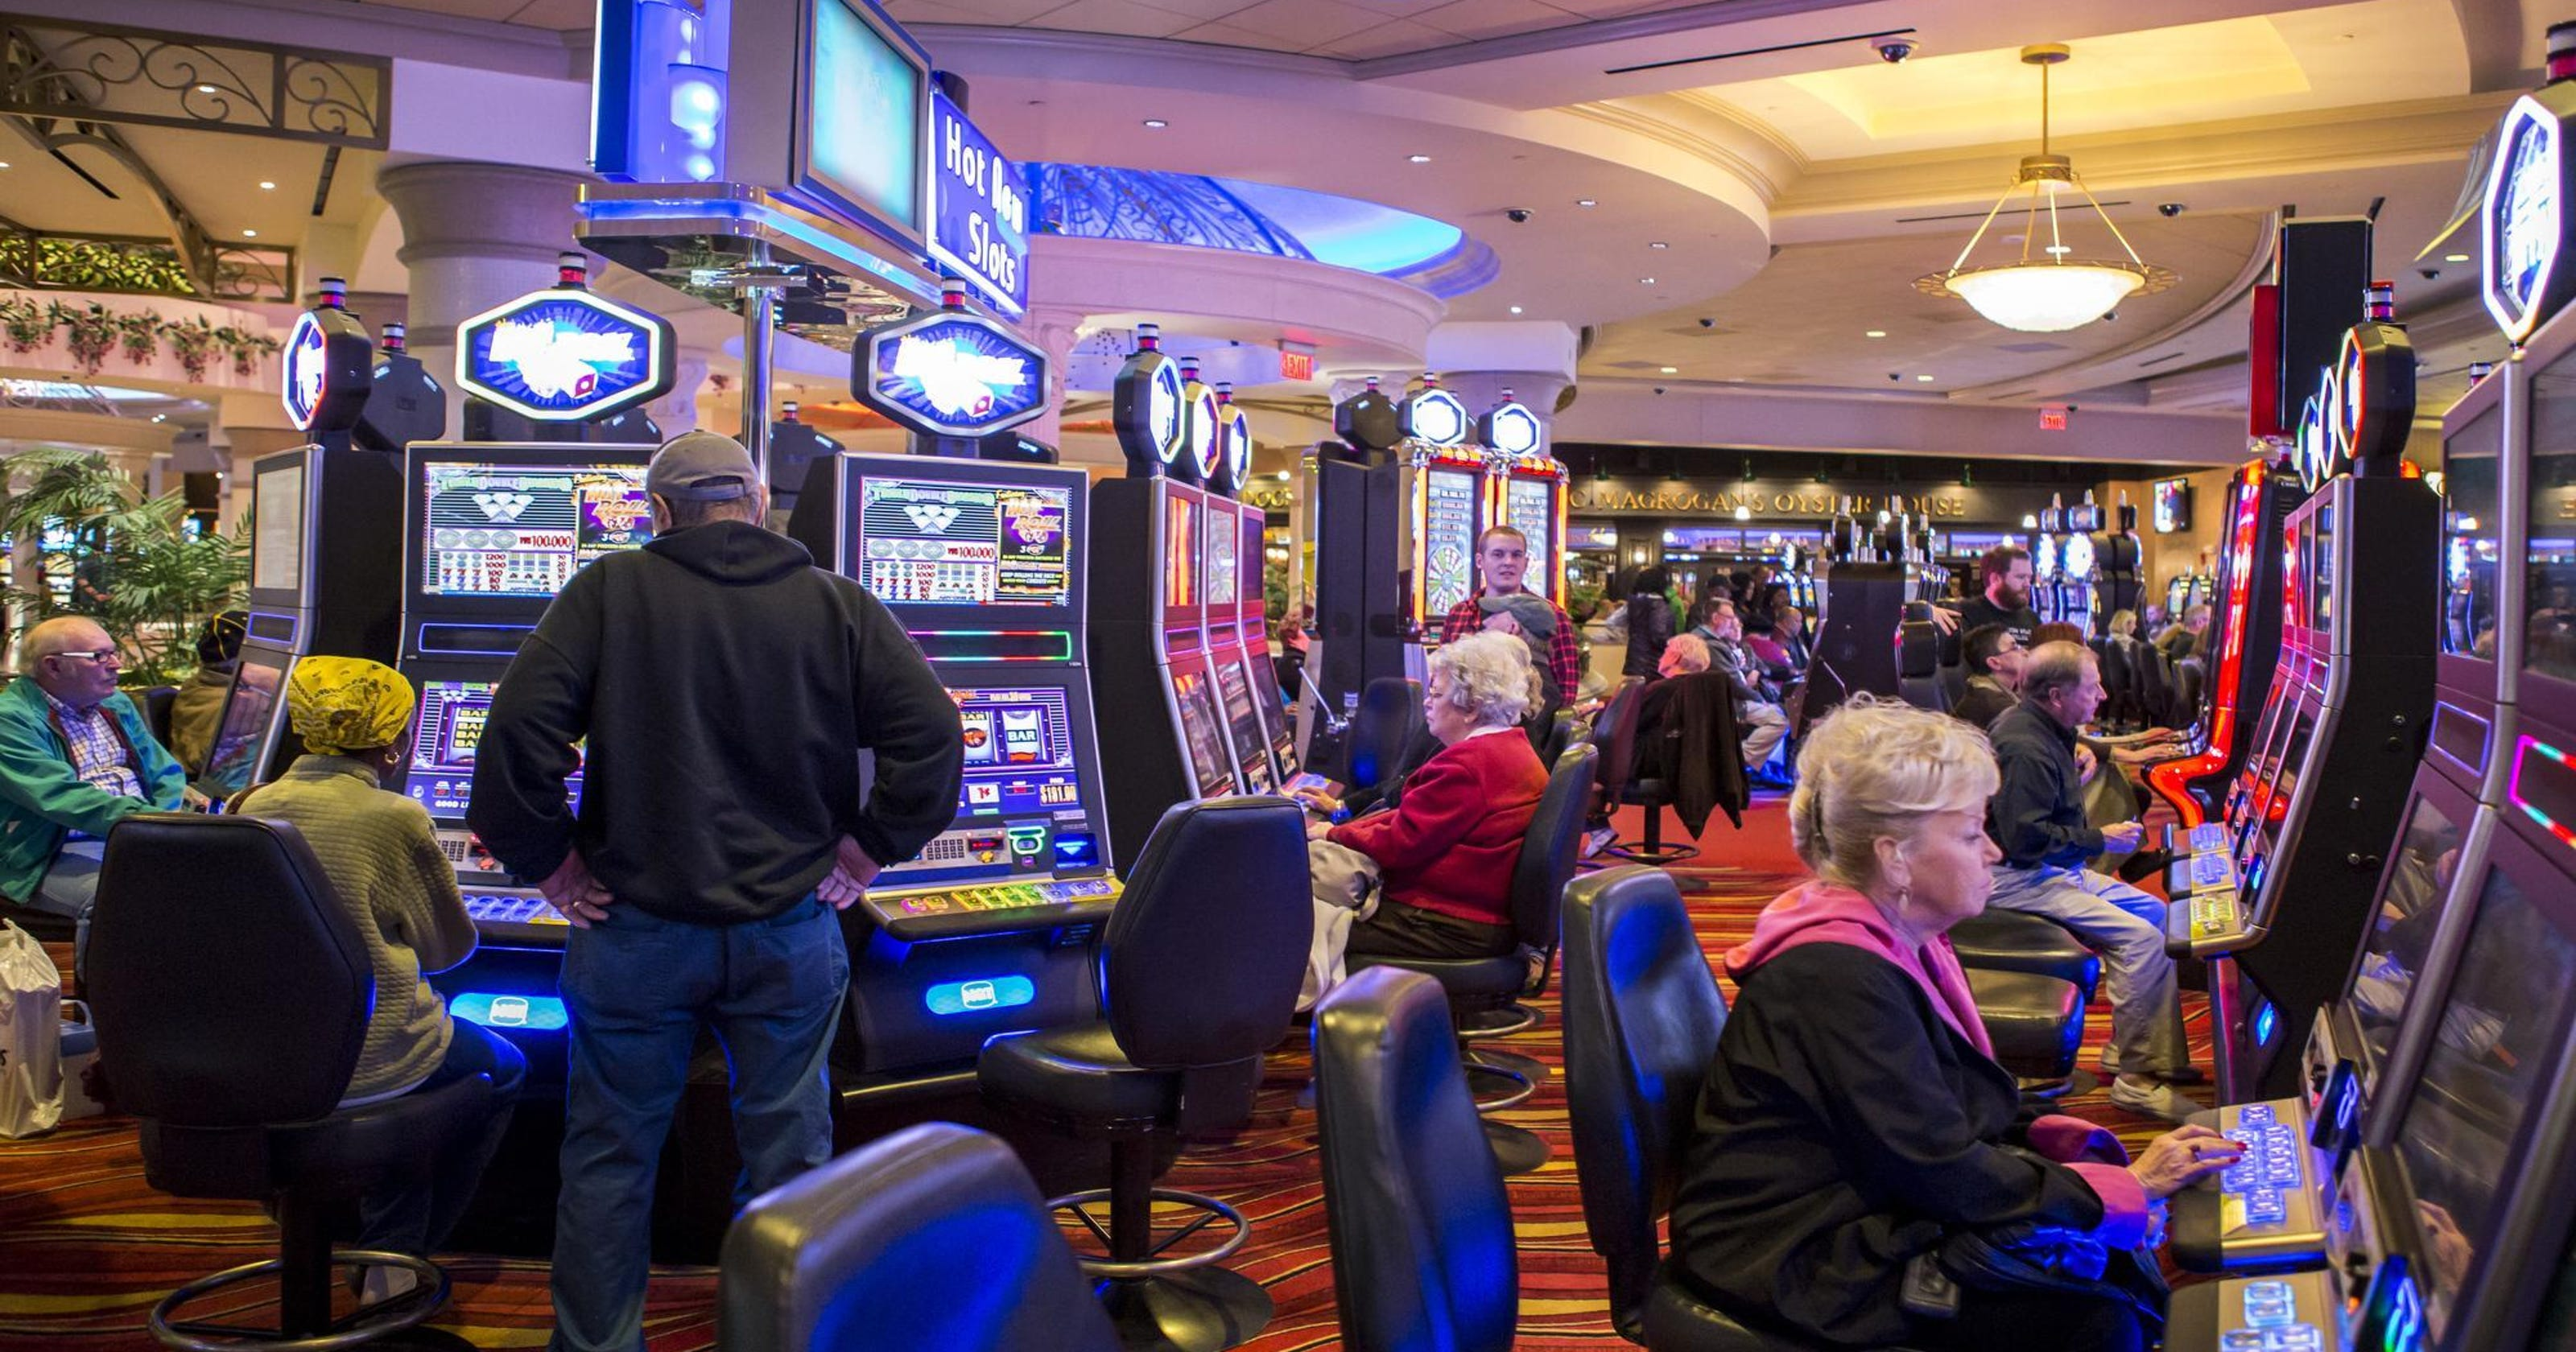 Unionized workers to picket outside 2 Las Vegas casinos